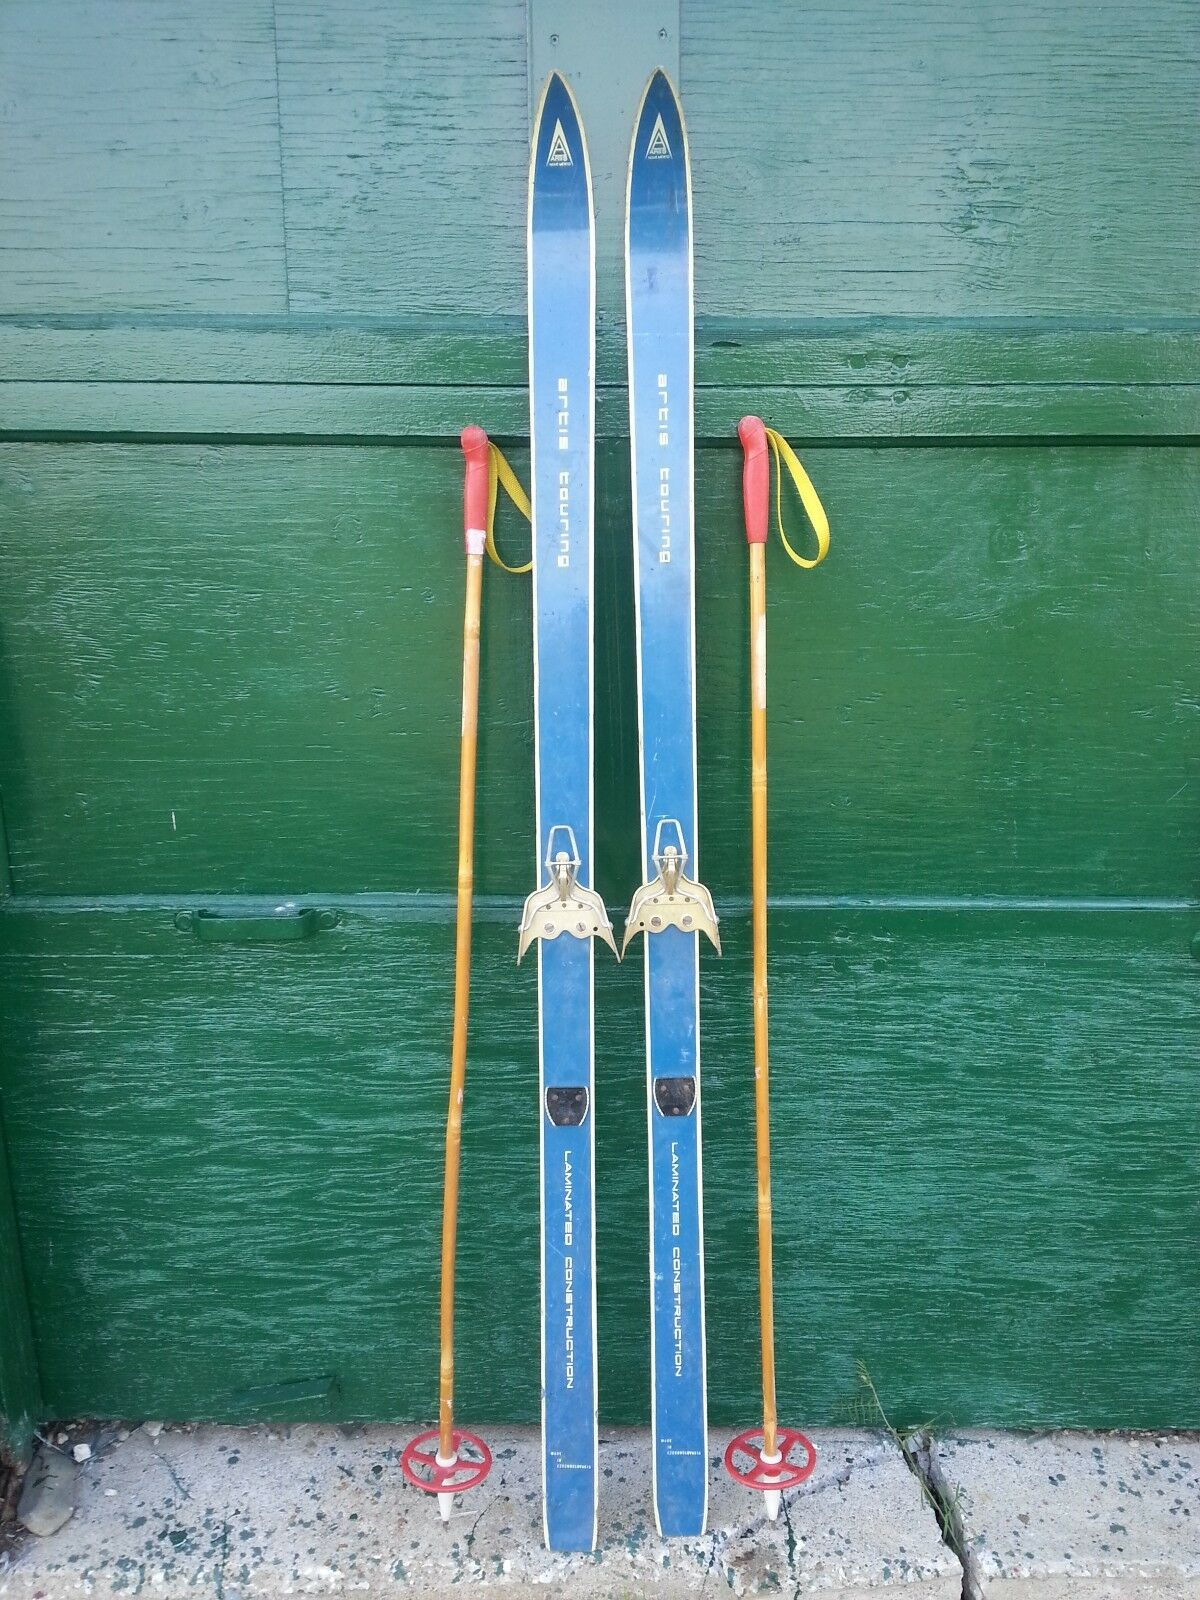 VINTAGE Wooden 59  Skis blueE Finish Signed ARTIS  TOURING + Bamboo Poles  latest styles